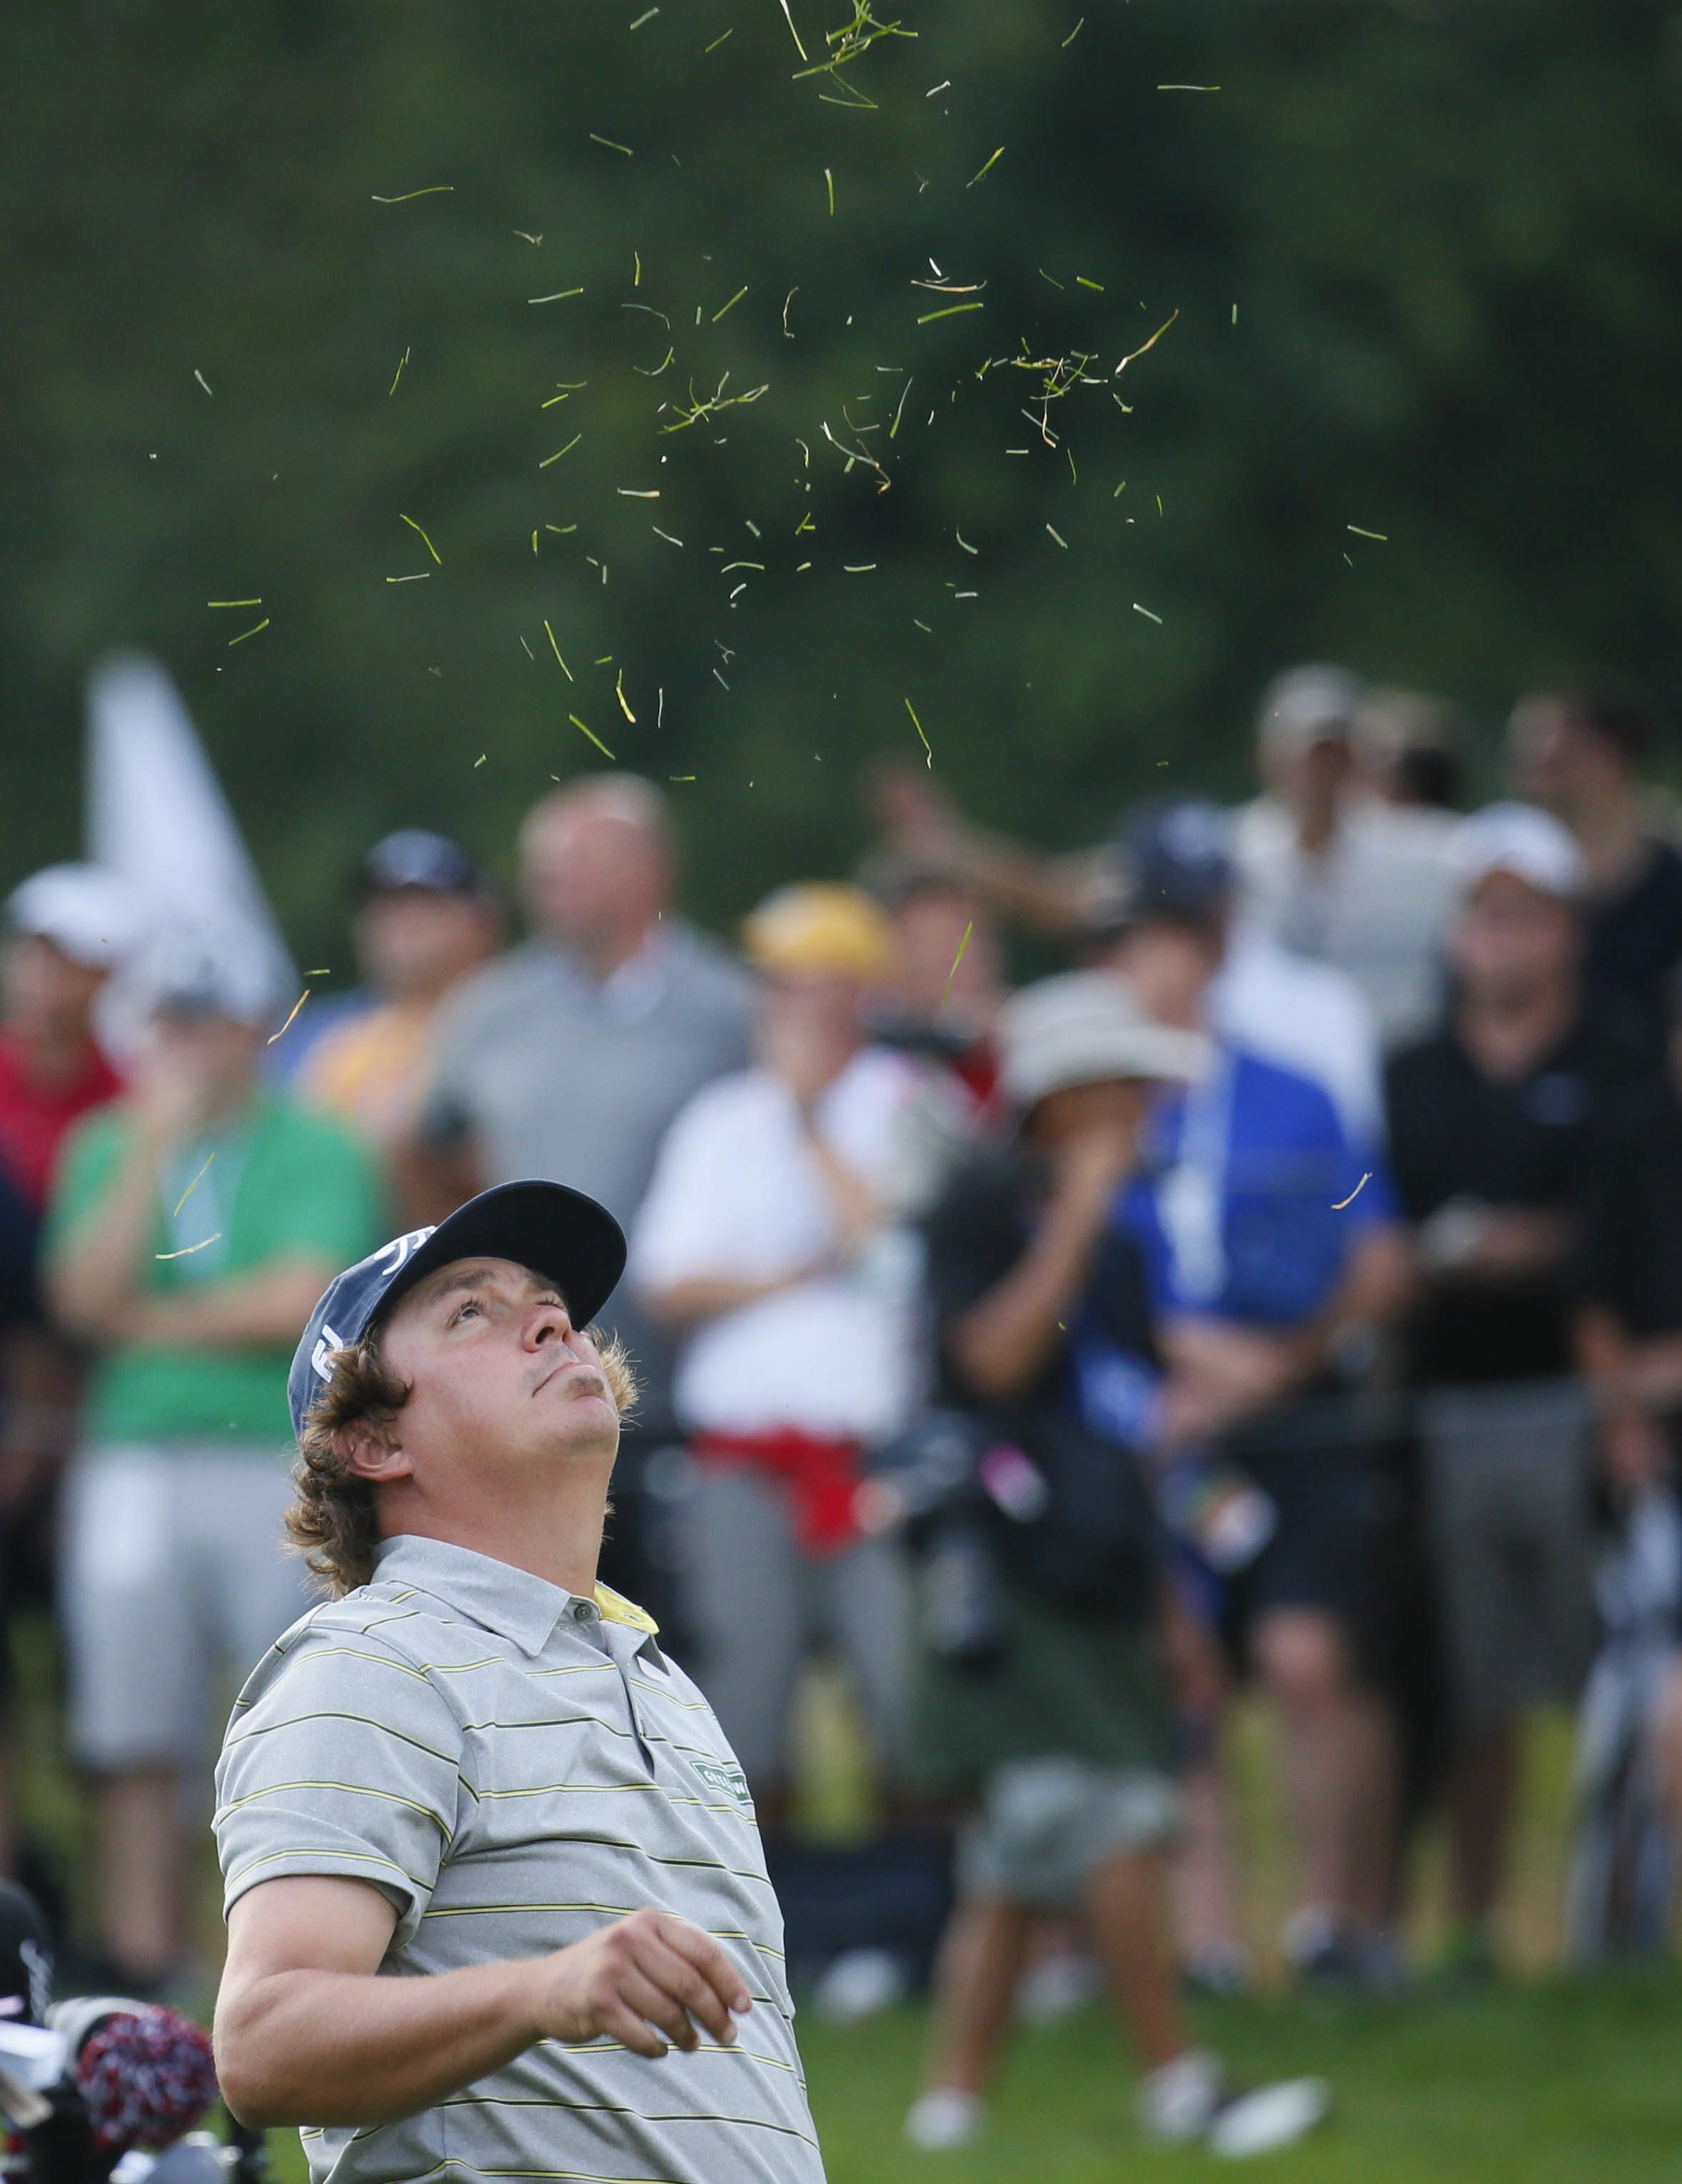 Jason Dufner tosses grass into the air to check the wind before hitting a shot on the 18th hole on Friday.